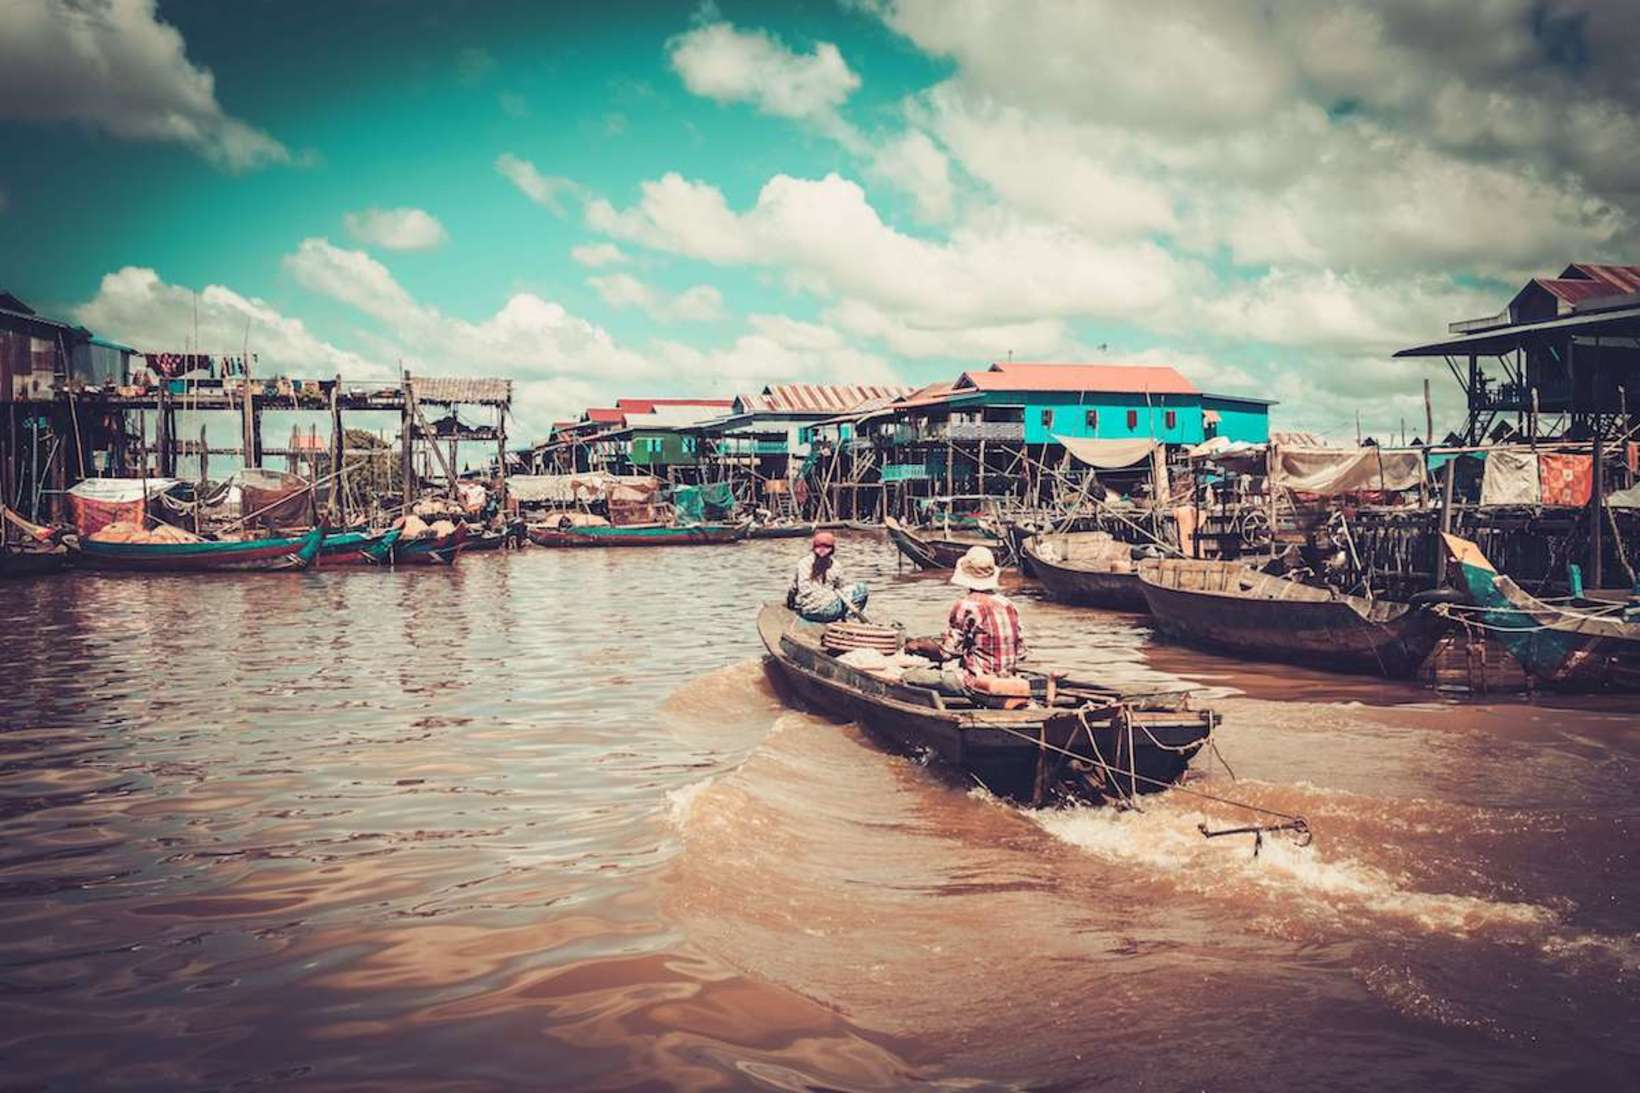 Journey Through Kampong Phluk - Siem Reap Floating Village